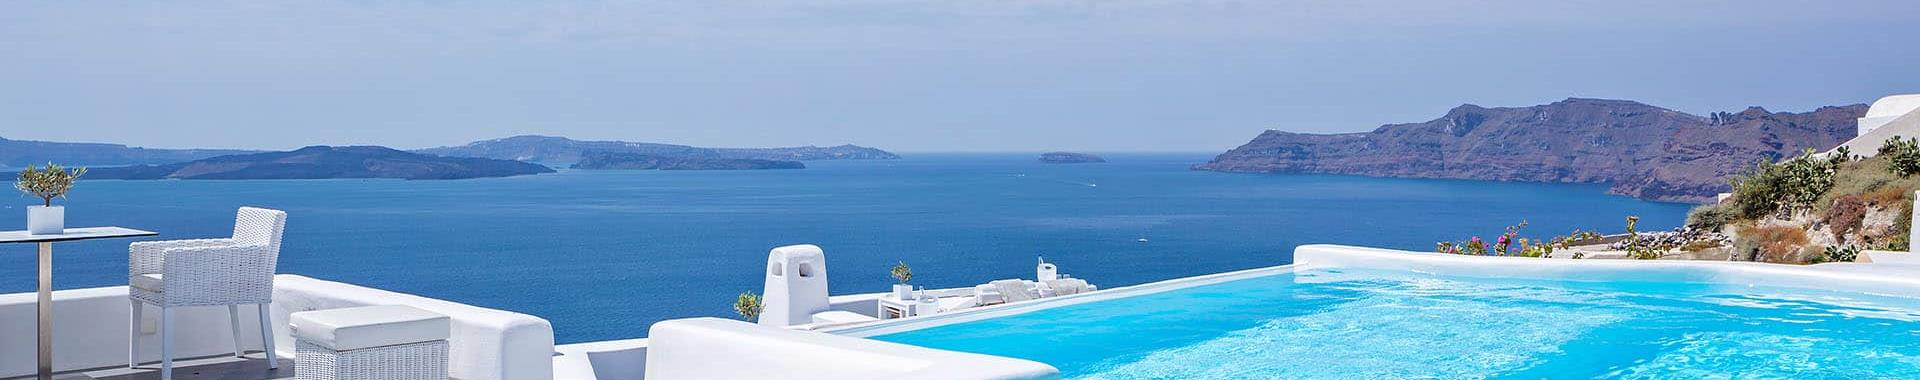 Fira or Akrotiri Santorini Hotels with Infinity Pool